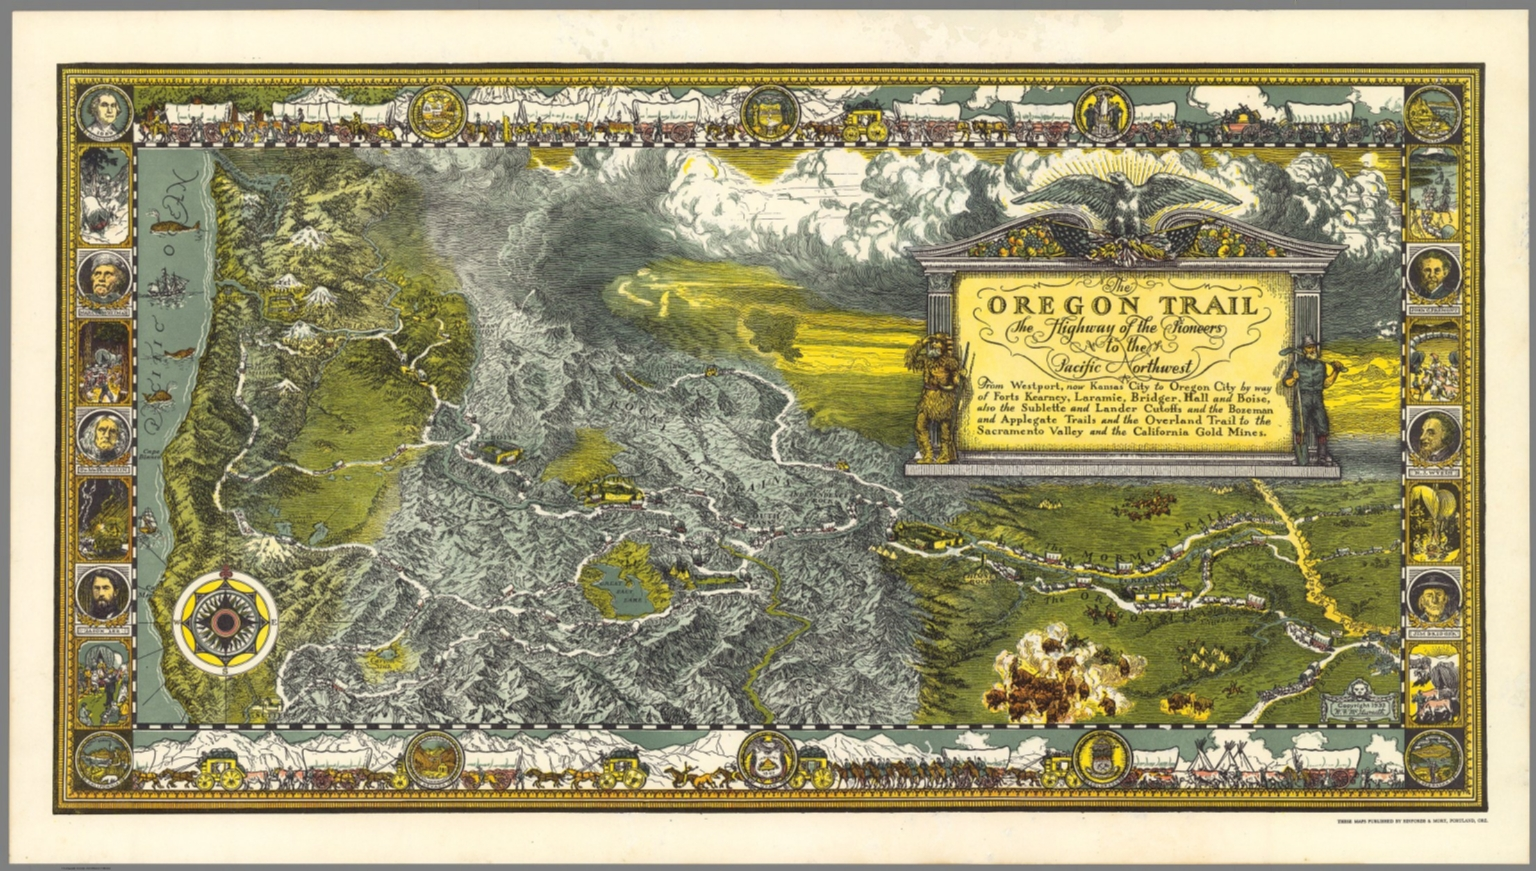 photograph regarding Oregon Trail Map Printable known as The Oregon Path. - David Rumsey Ancient Map Variety